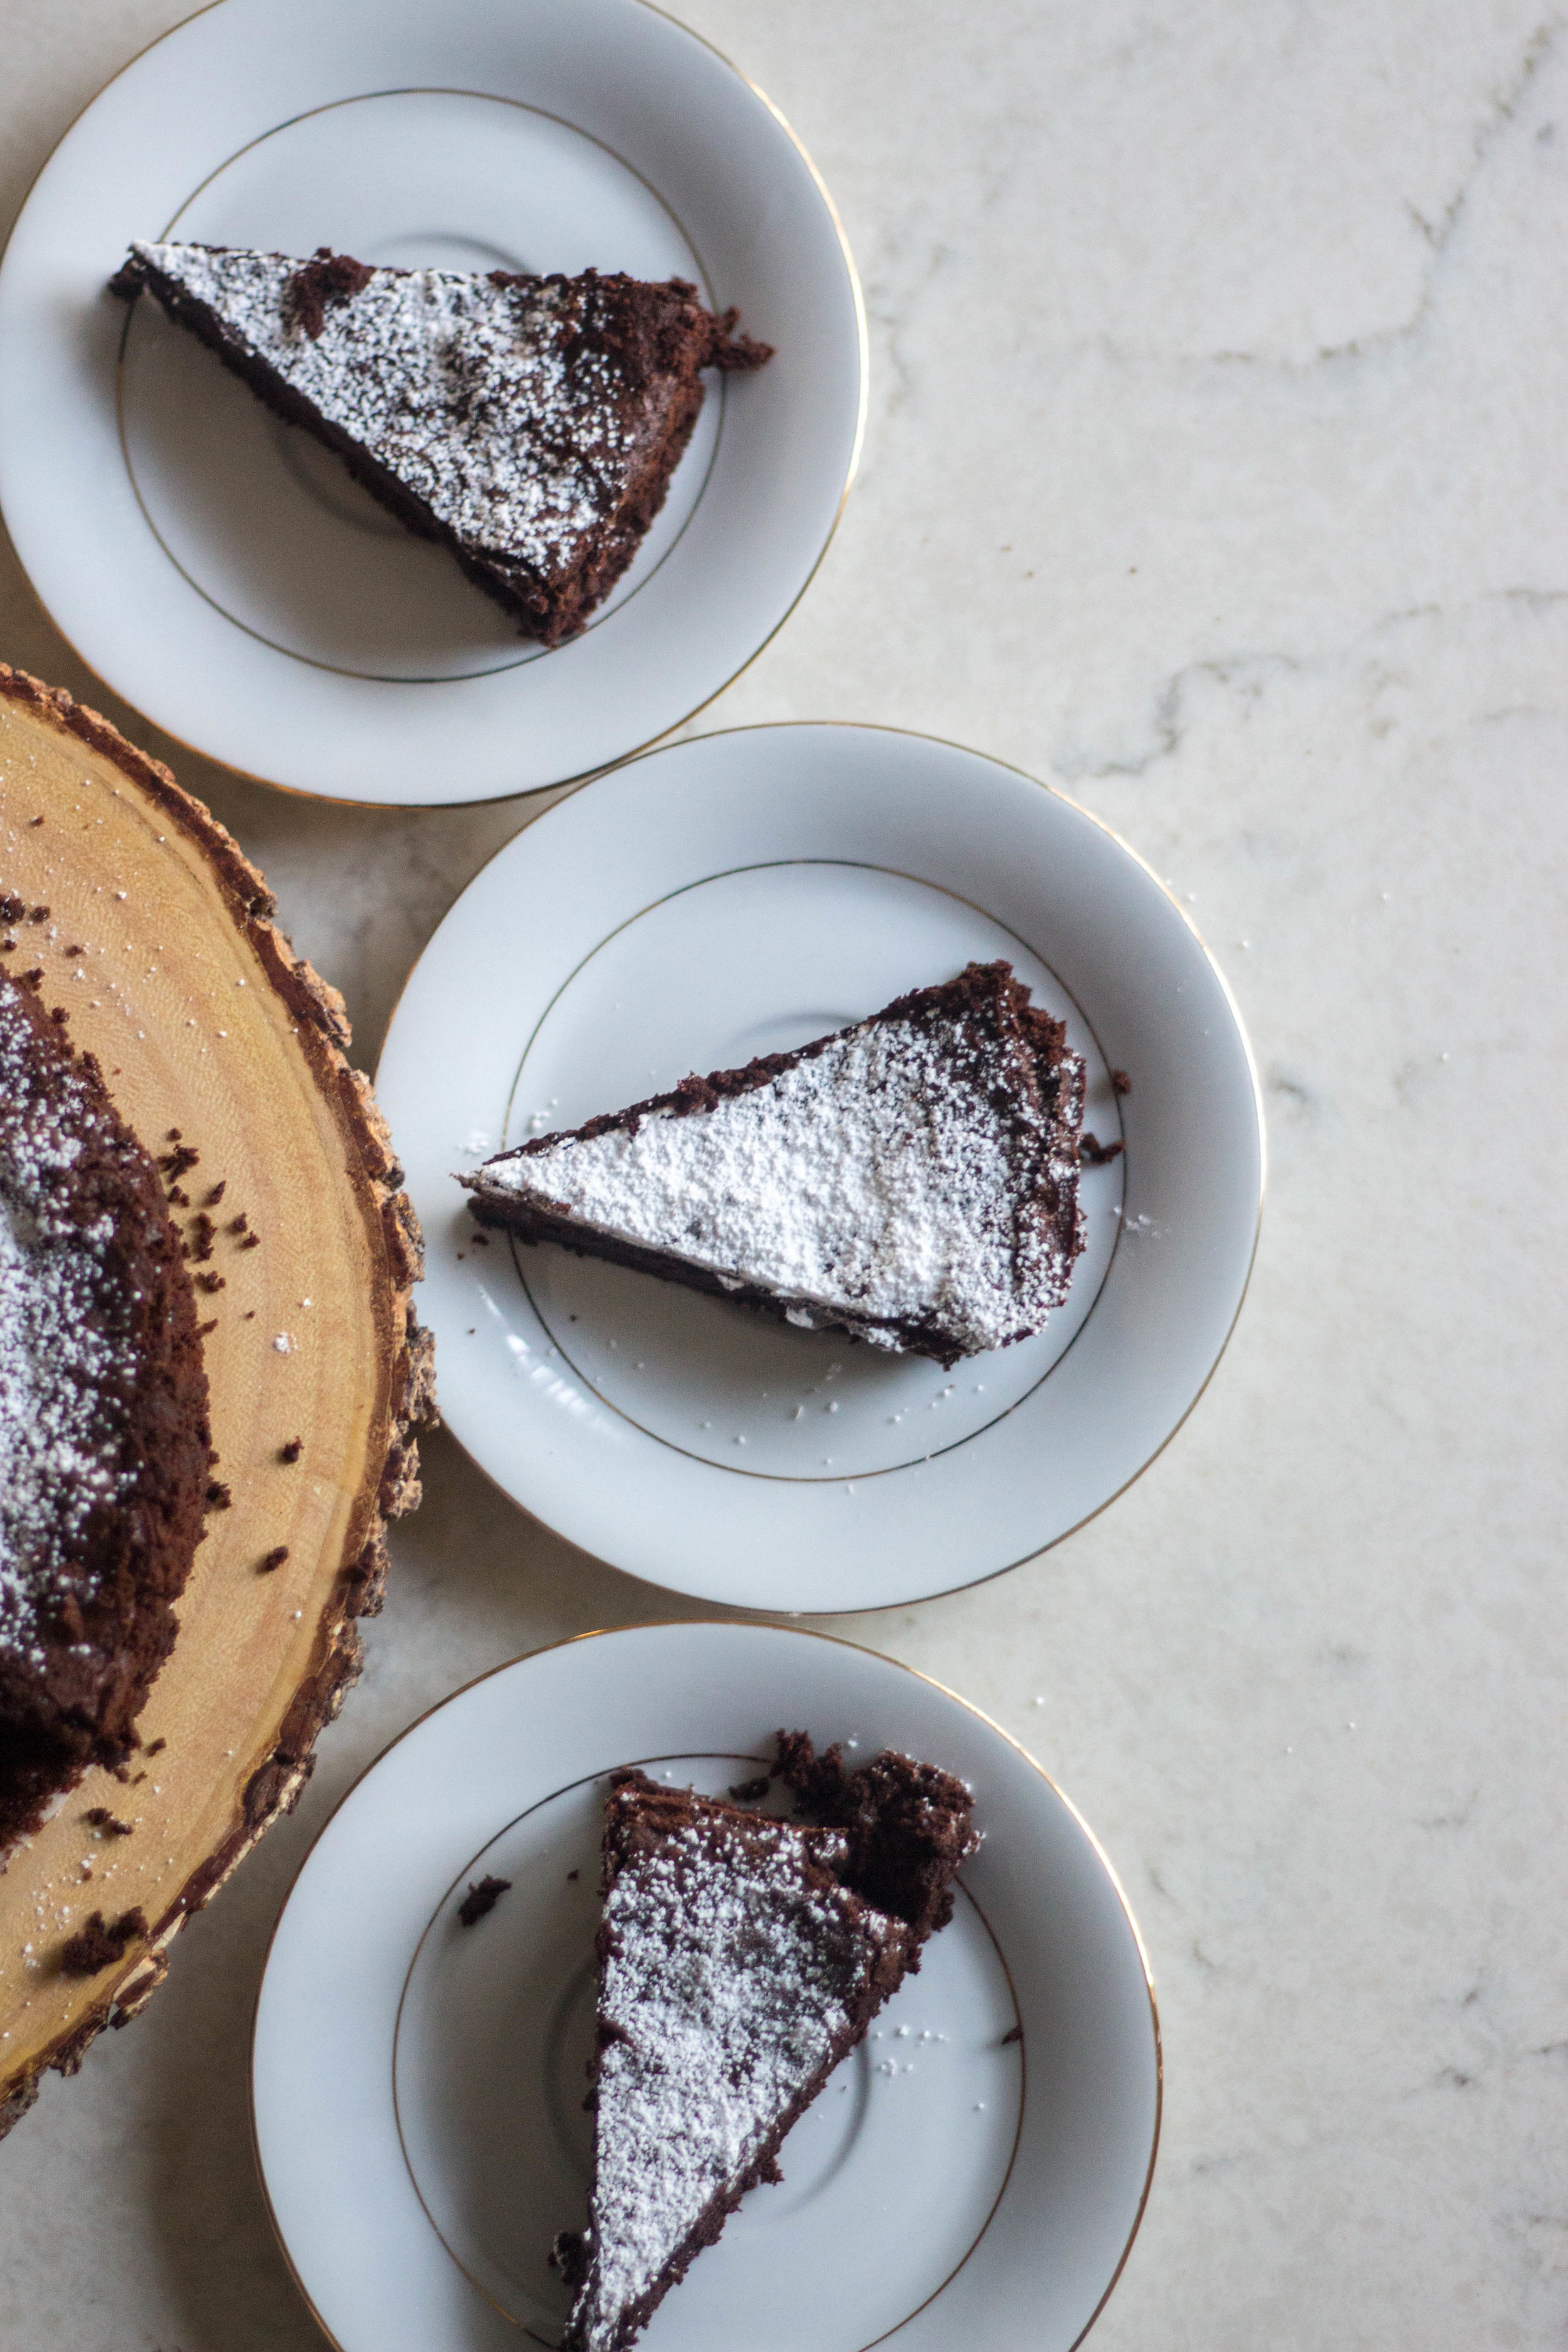 flourless chocolate cake - makes one 8- or 9-inch cakeadapted from king arthur flour1 cup semisweet chocolate chips1/2 cup unsalted butter3/4 cup granulated sugar1/4 teaspoon salt2 teaspoons espresso powder1 teaspoon vanilla extract3 large eggs1/2 cup dutch-processed unsweetened cocoa